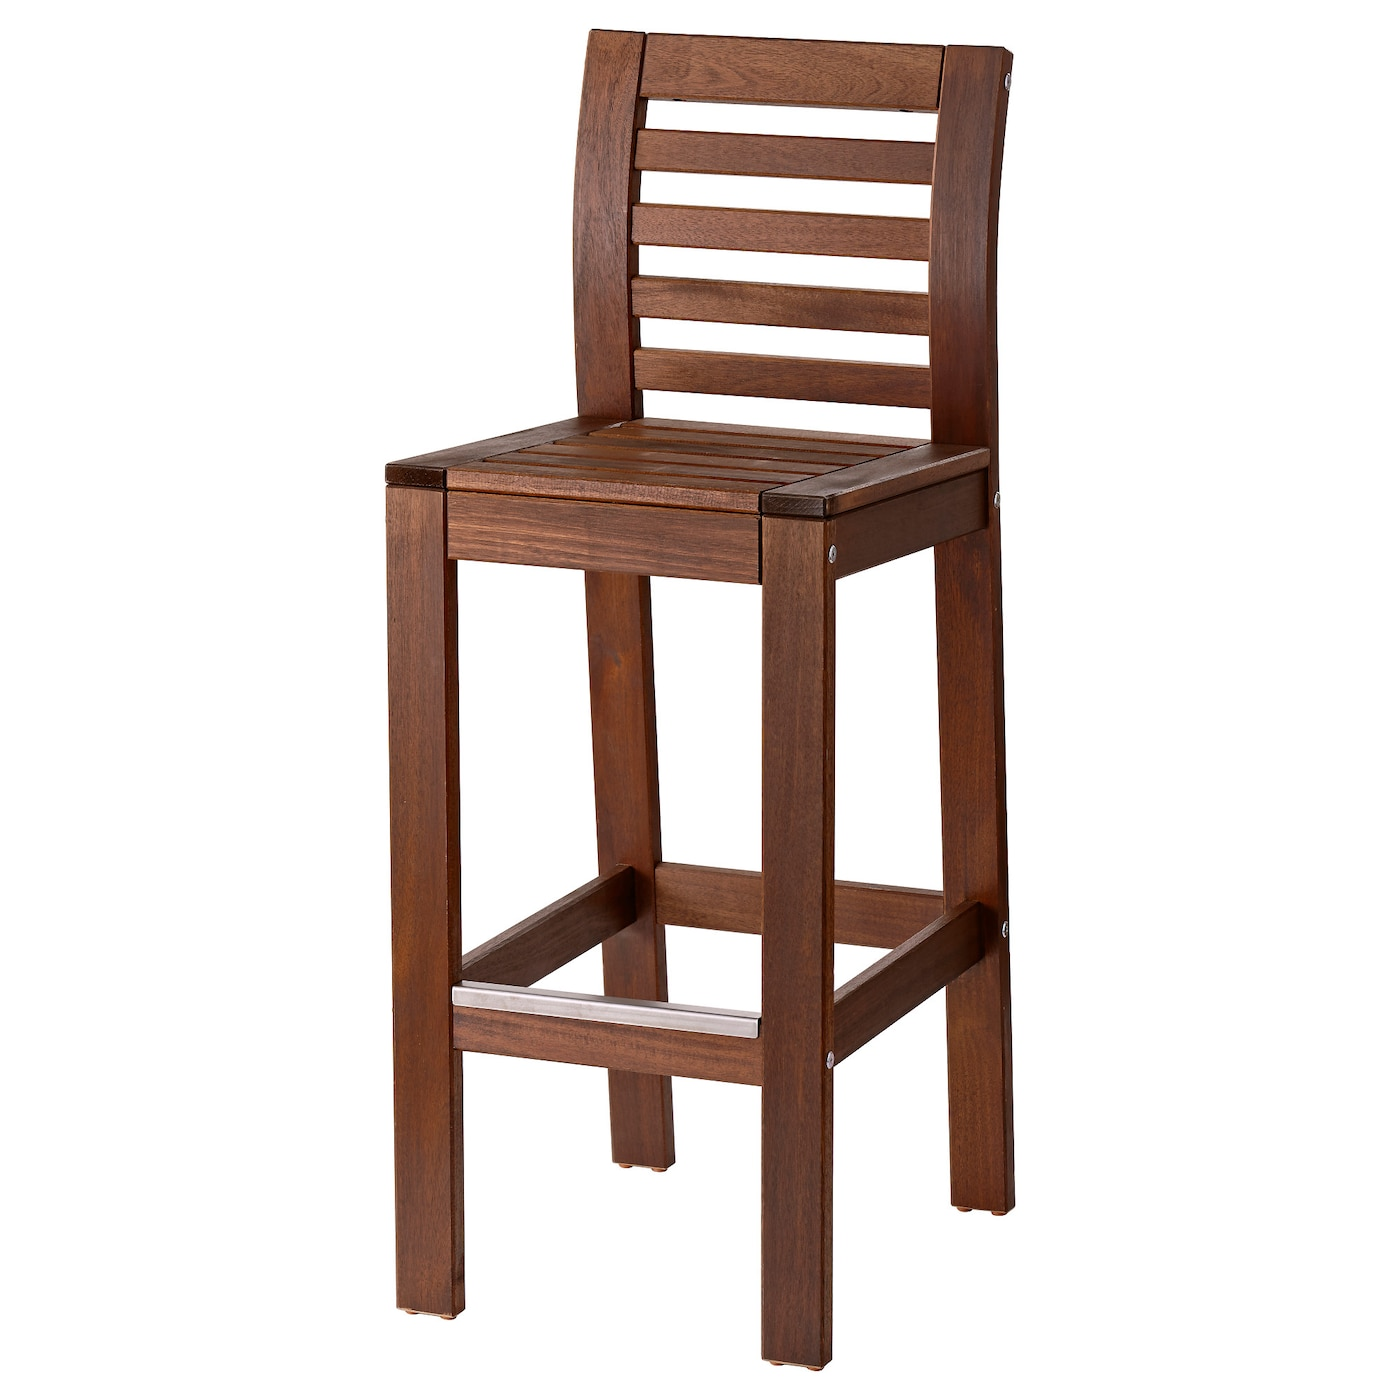 ÄPPLARÖ Bar stool with backrest, outdoor - brown stained